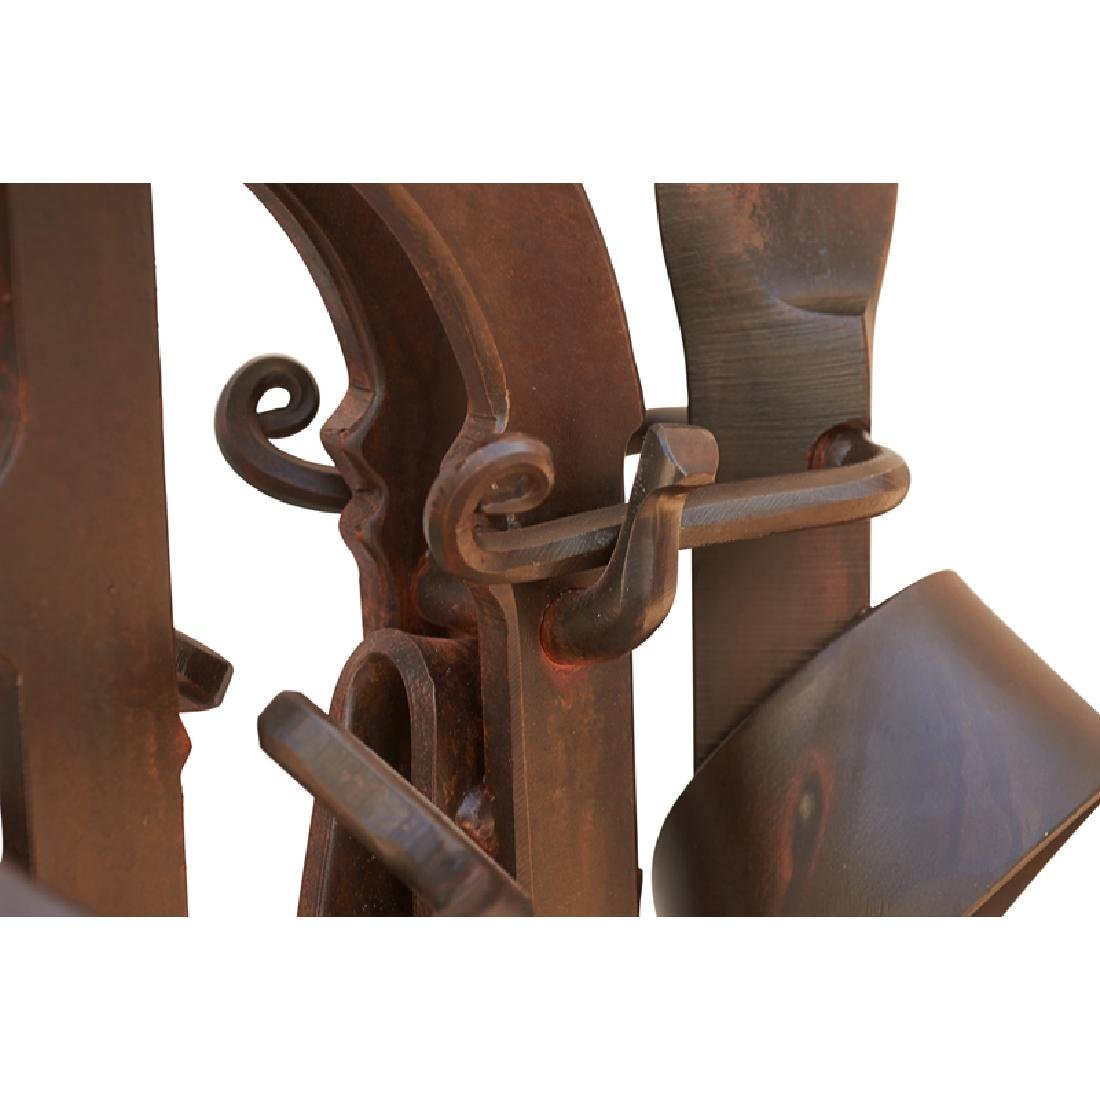 ALBERT PALEY Untitled (Garden Gate) - 8